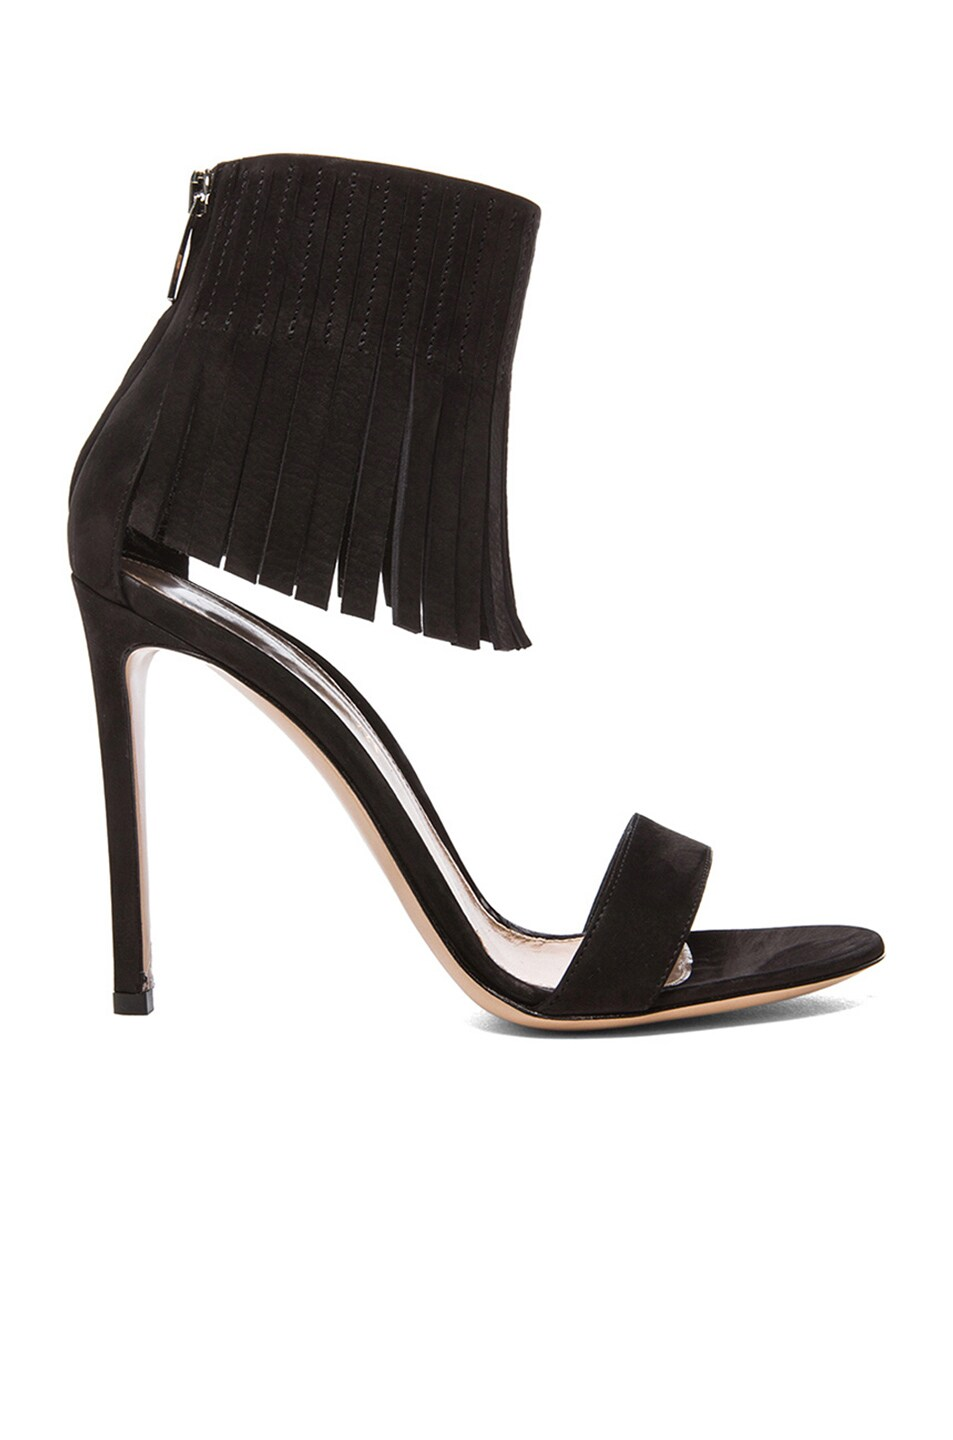 Image 1 of Gianvito Rossi Suede Fringe Ankle Heels in Black